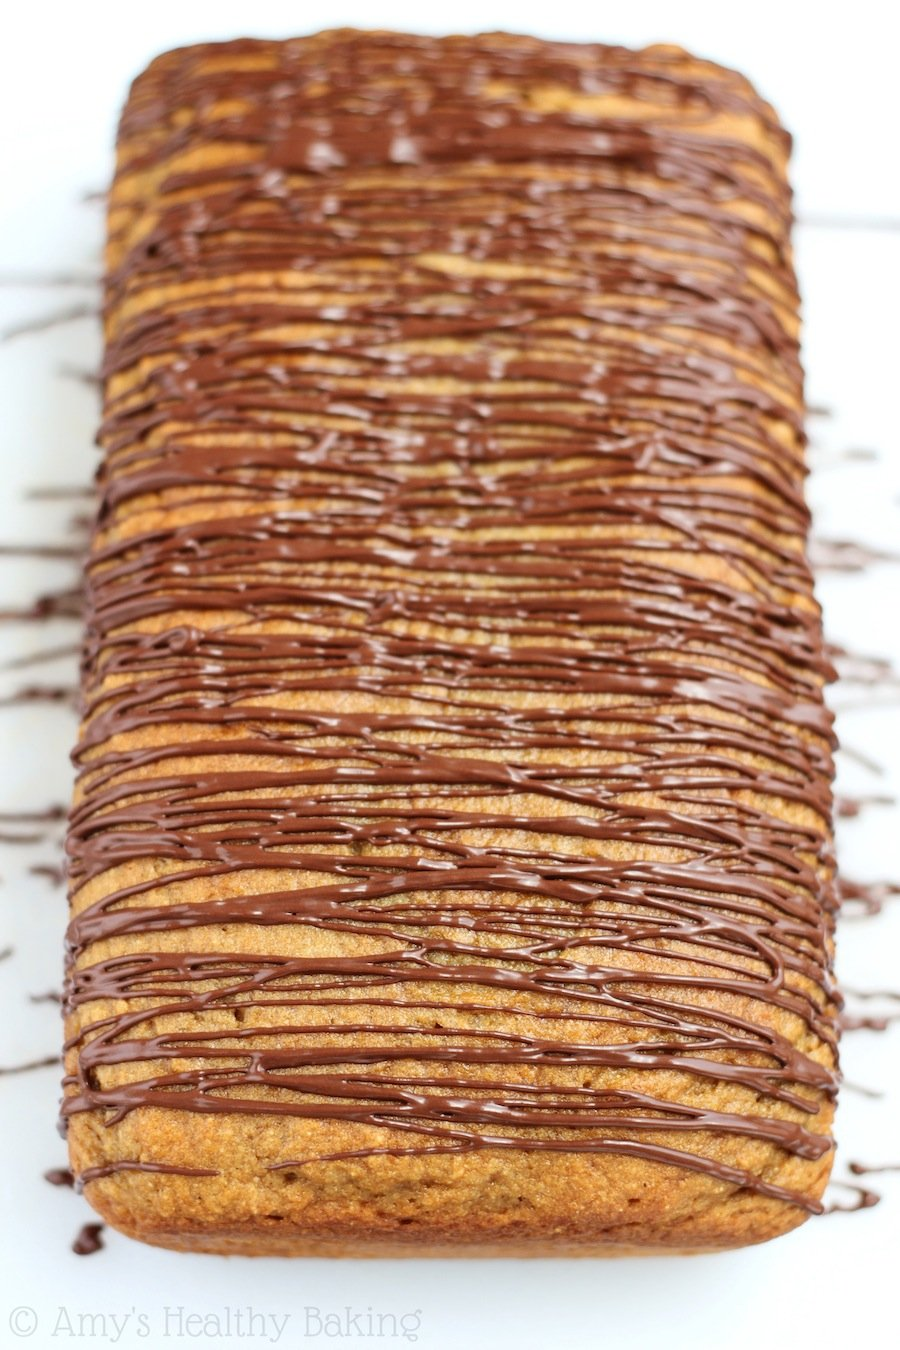 Recipe: Coffee Loaf Cake with Dark Chocolate Drizzle